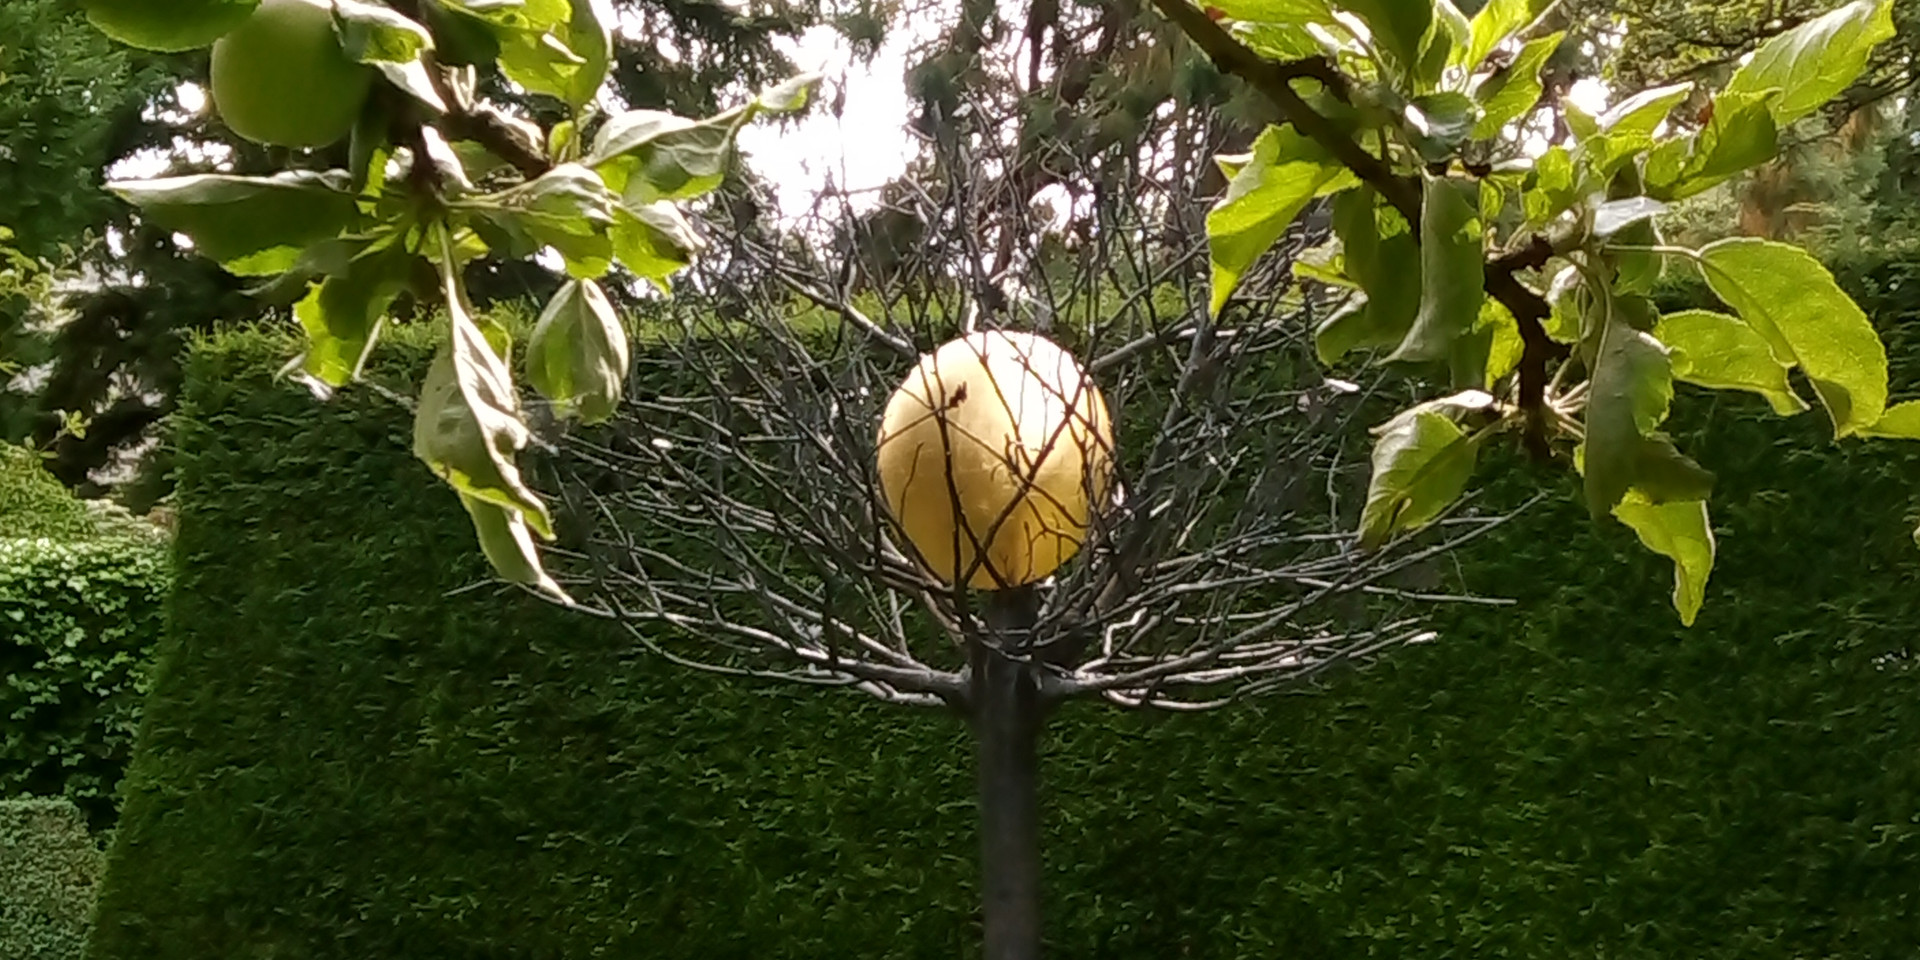 Tree of Life sculpture by the Arran artist Tom Pomeroy.